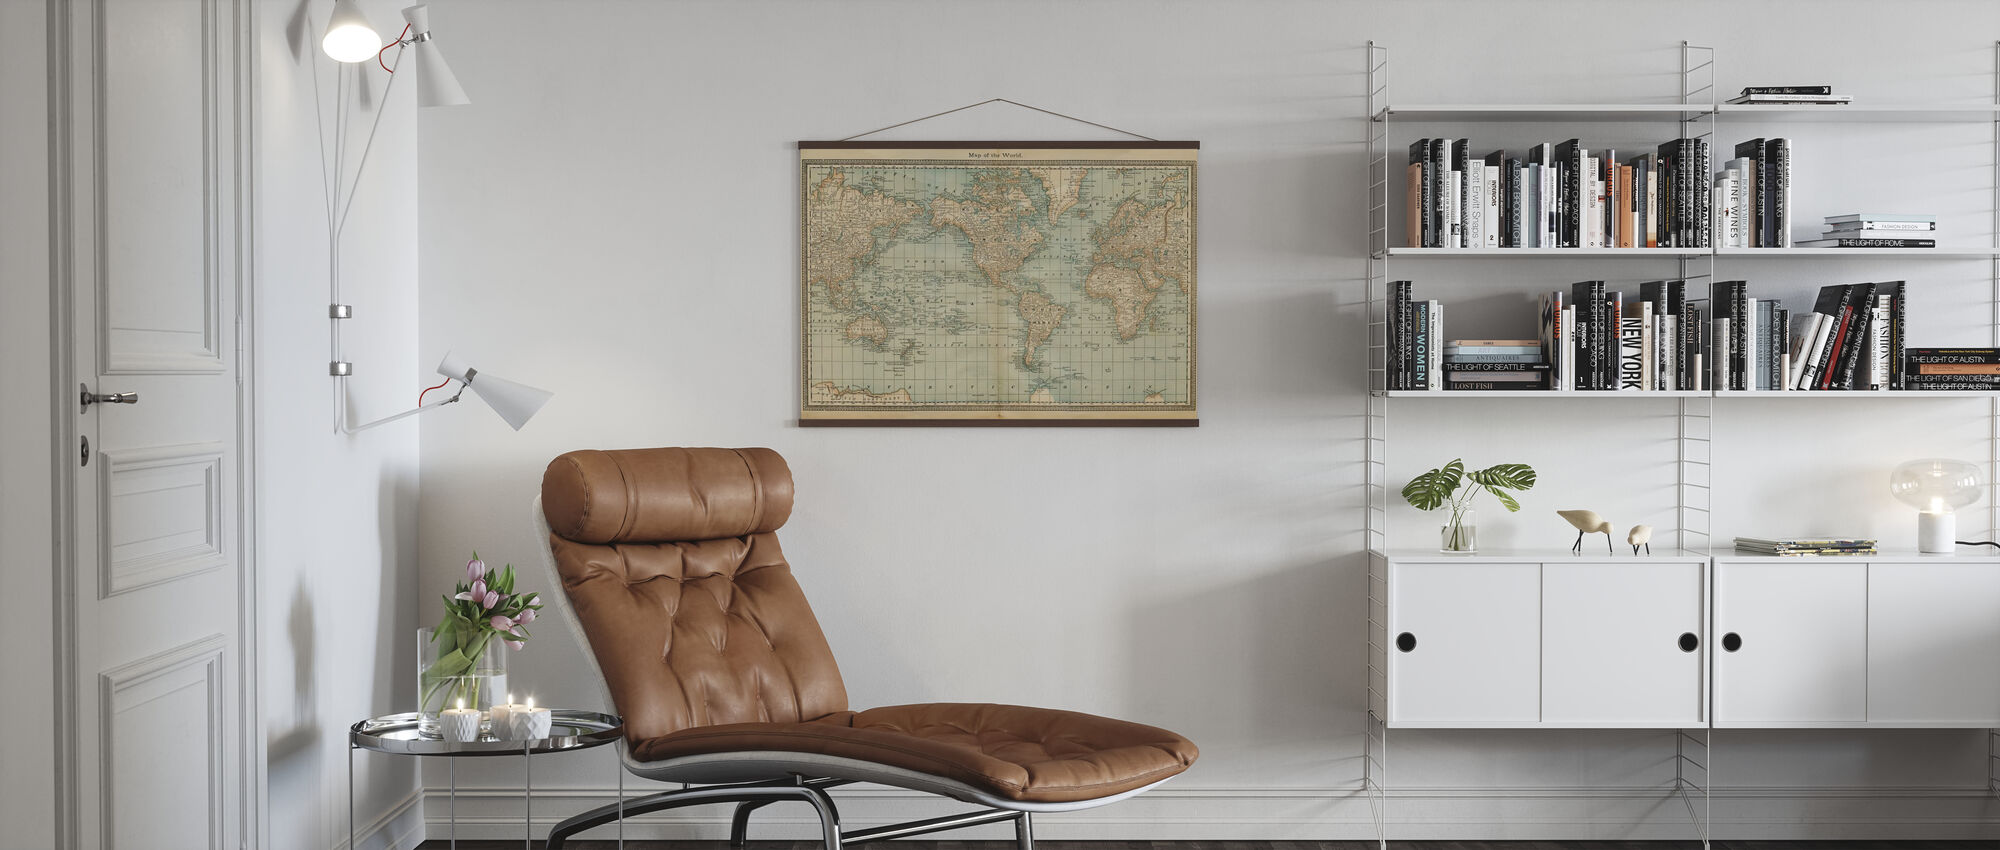 Pale Vintage World Map - Poster - Living Room